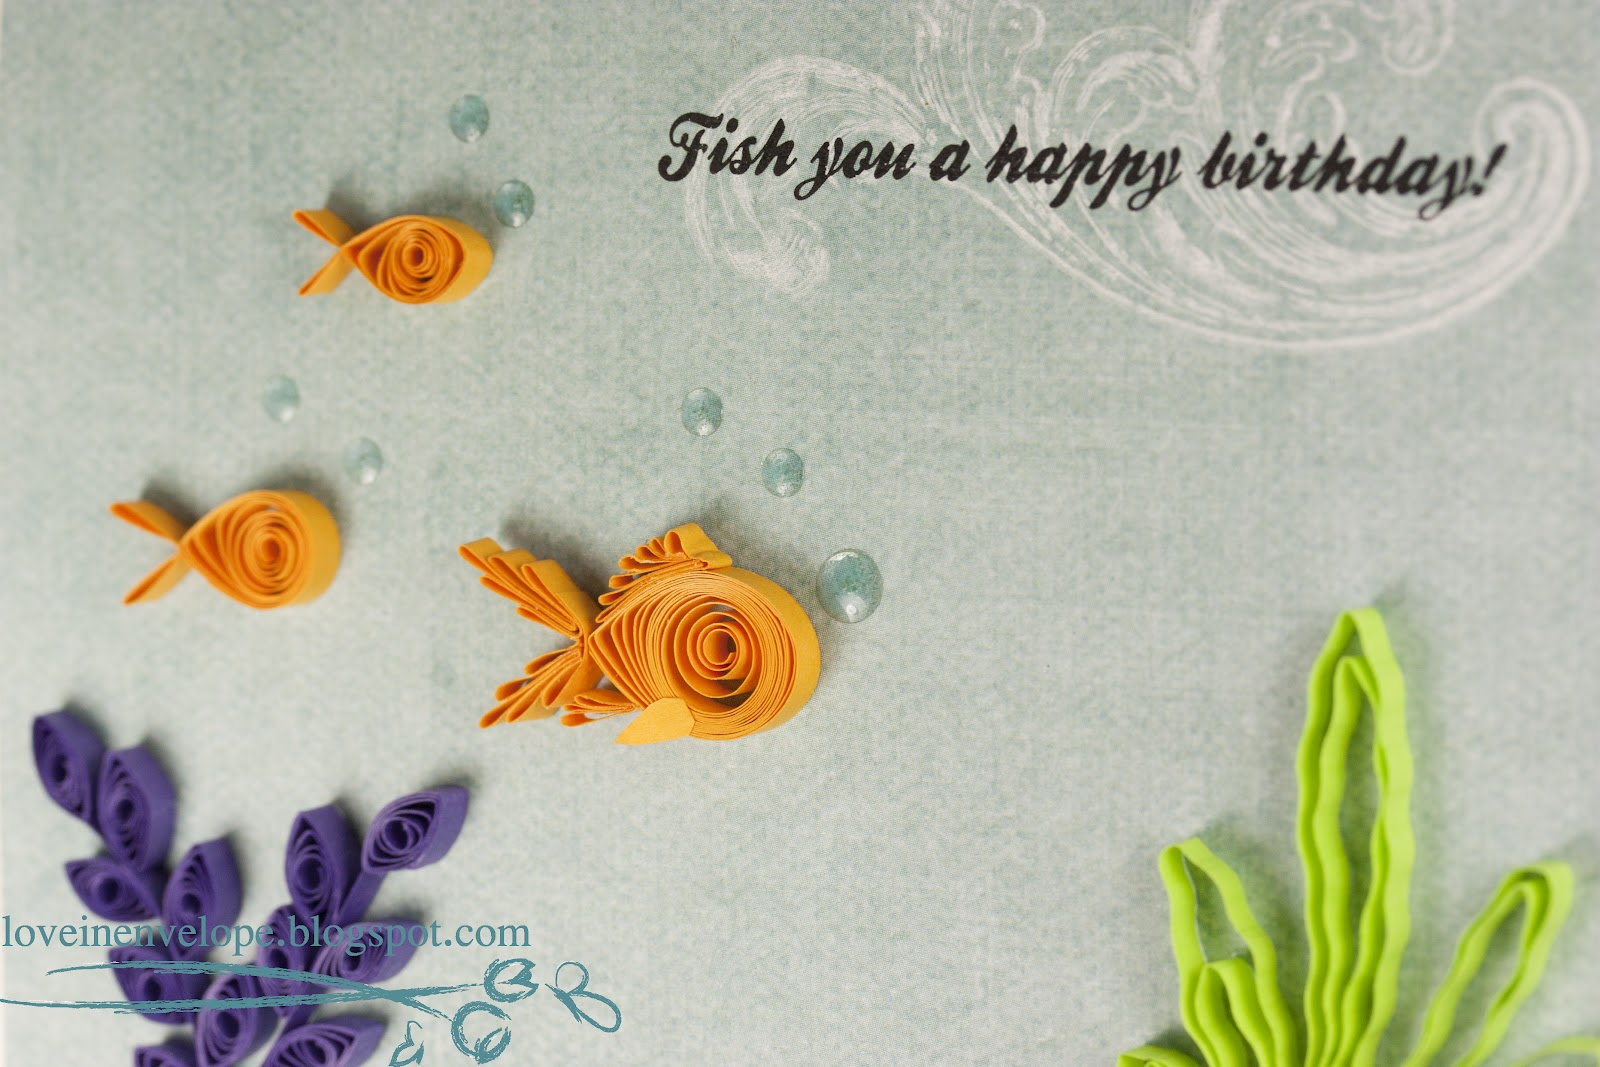 Love In Envelope Fish You A Happy Birthday Quilled Goldfish And